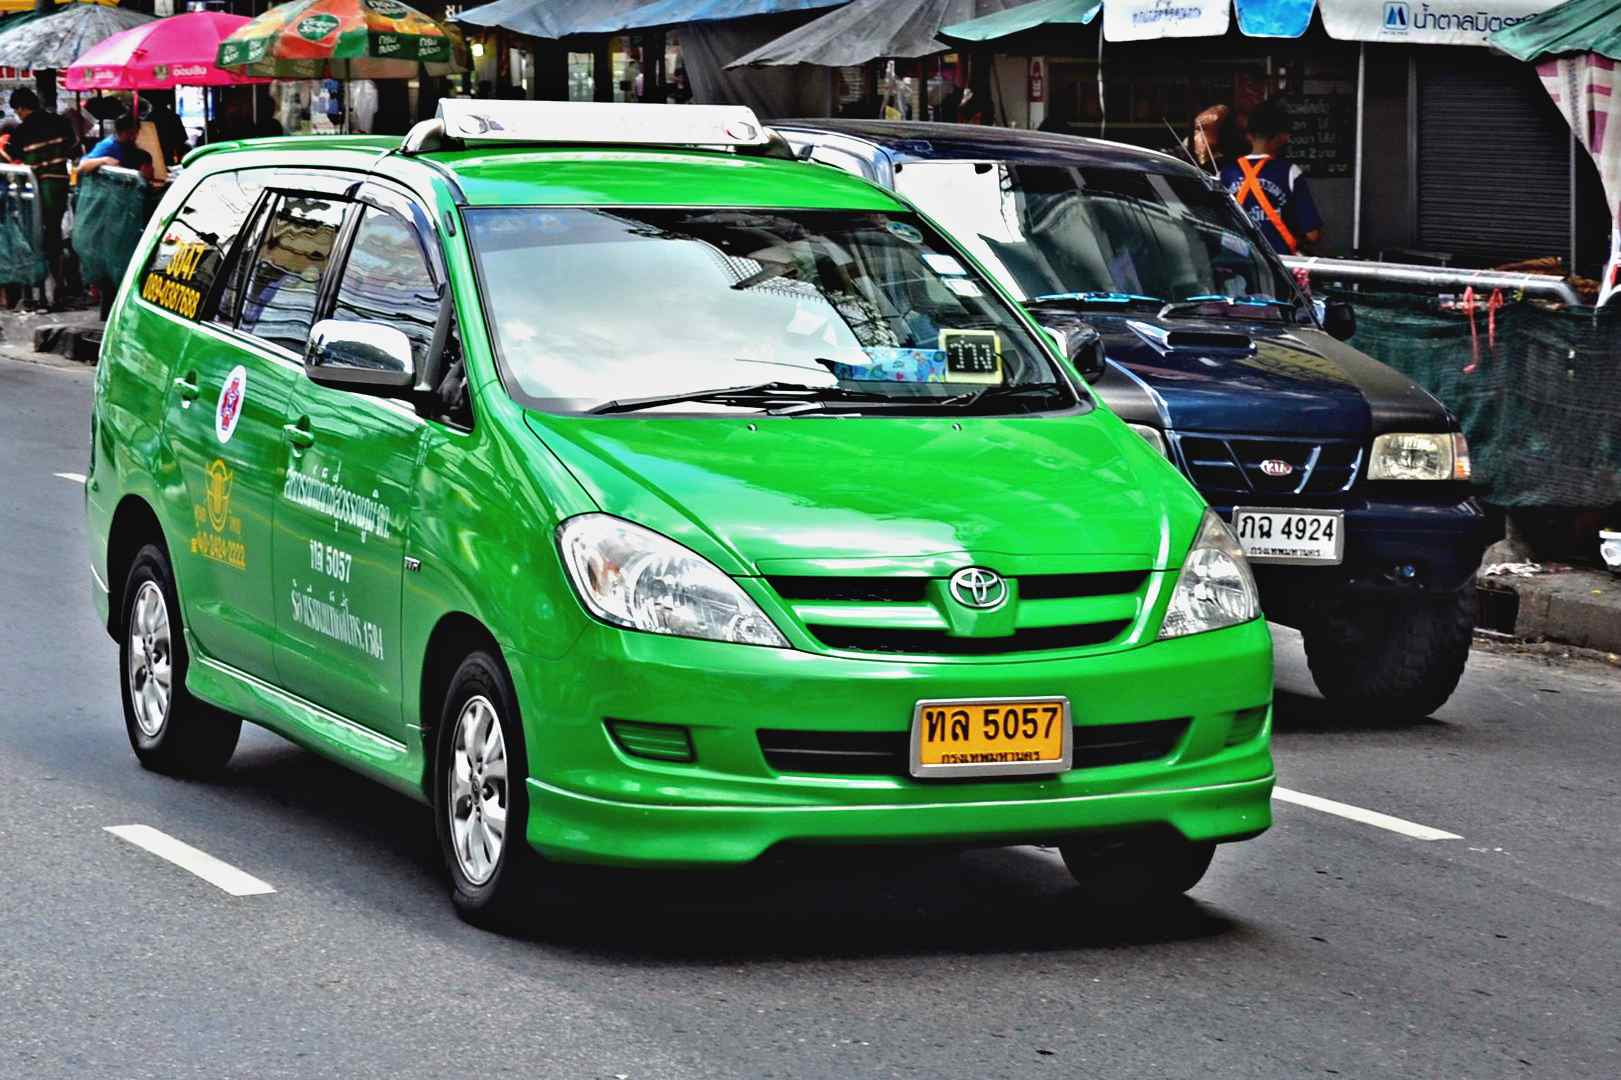 Green taxi van in Bangkok